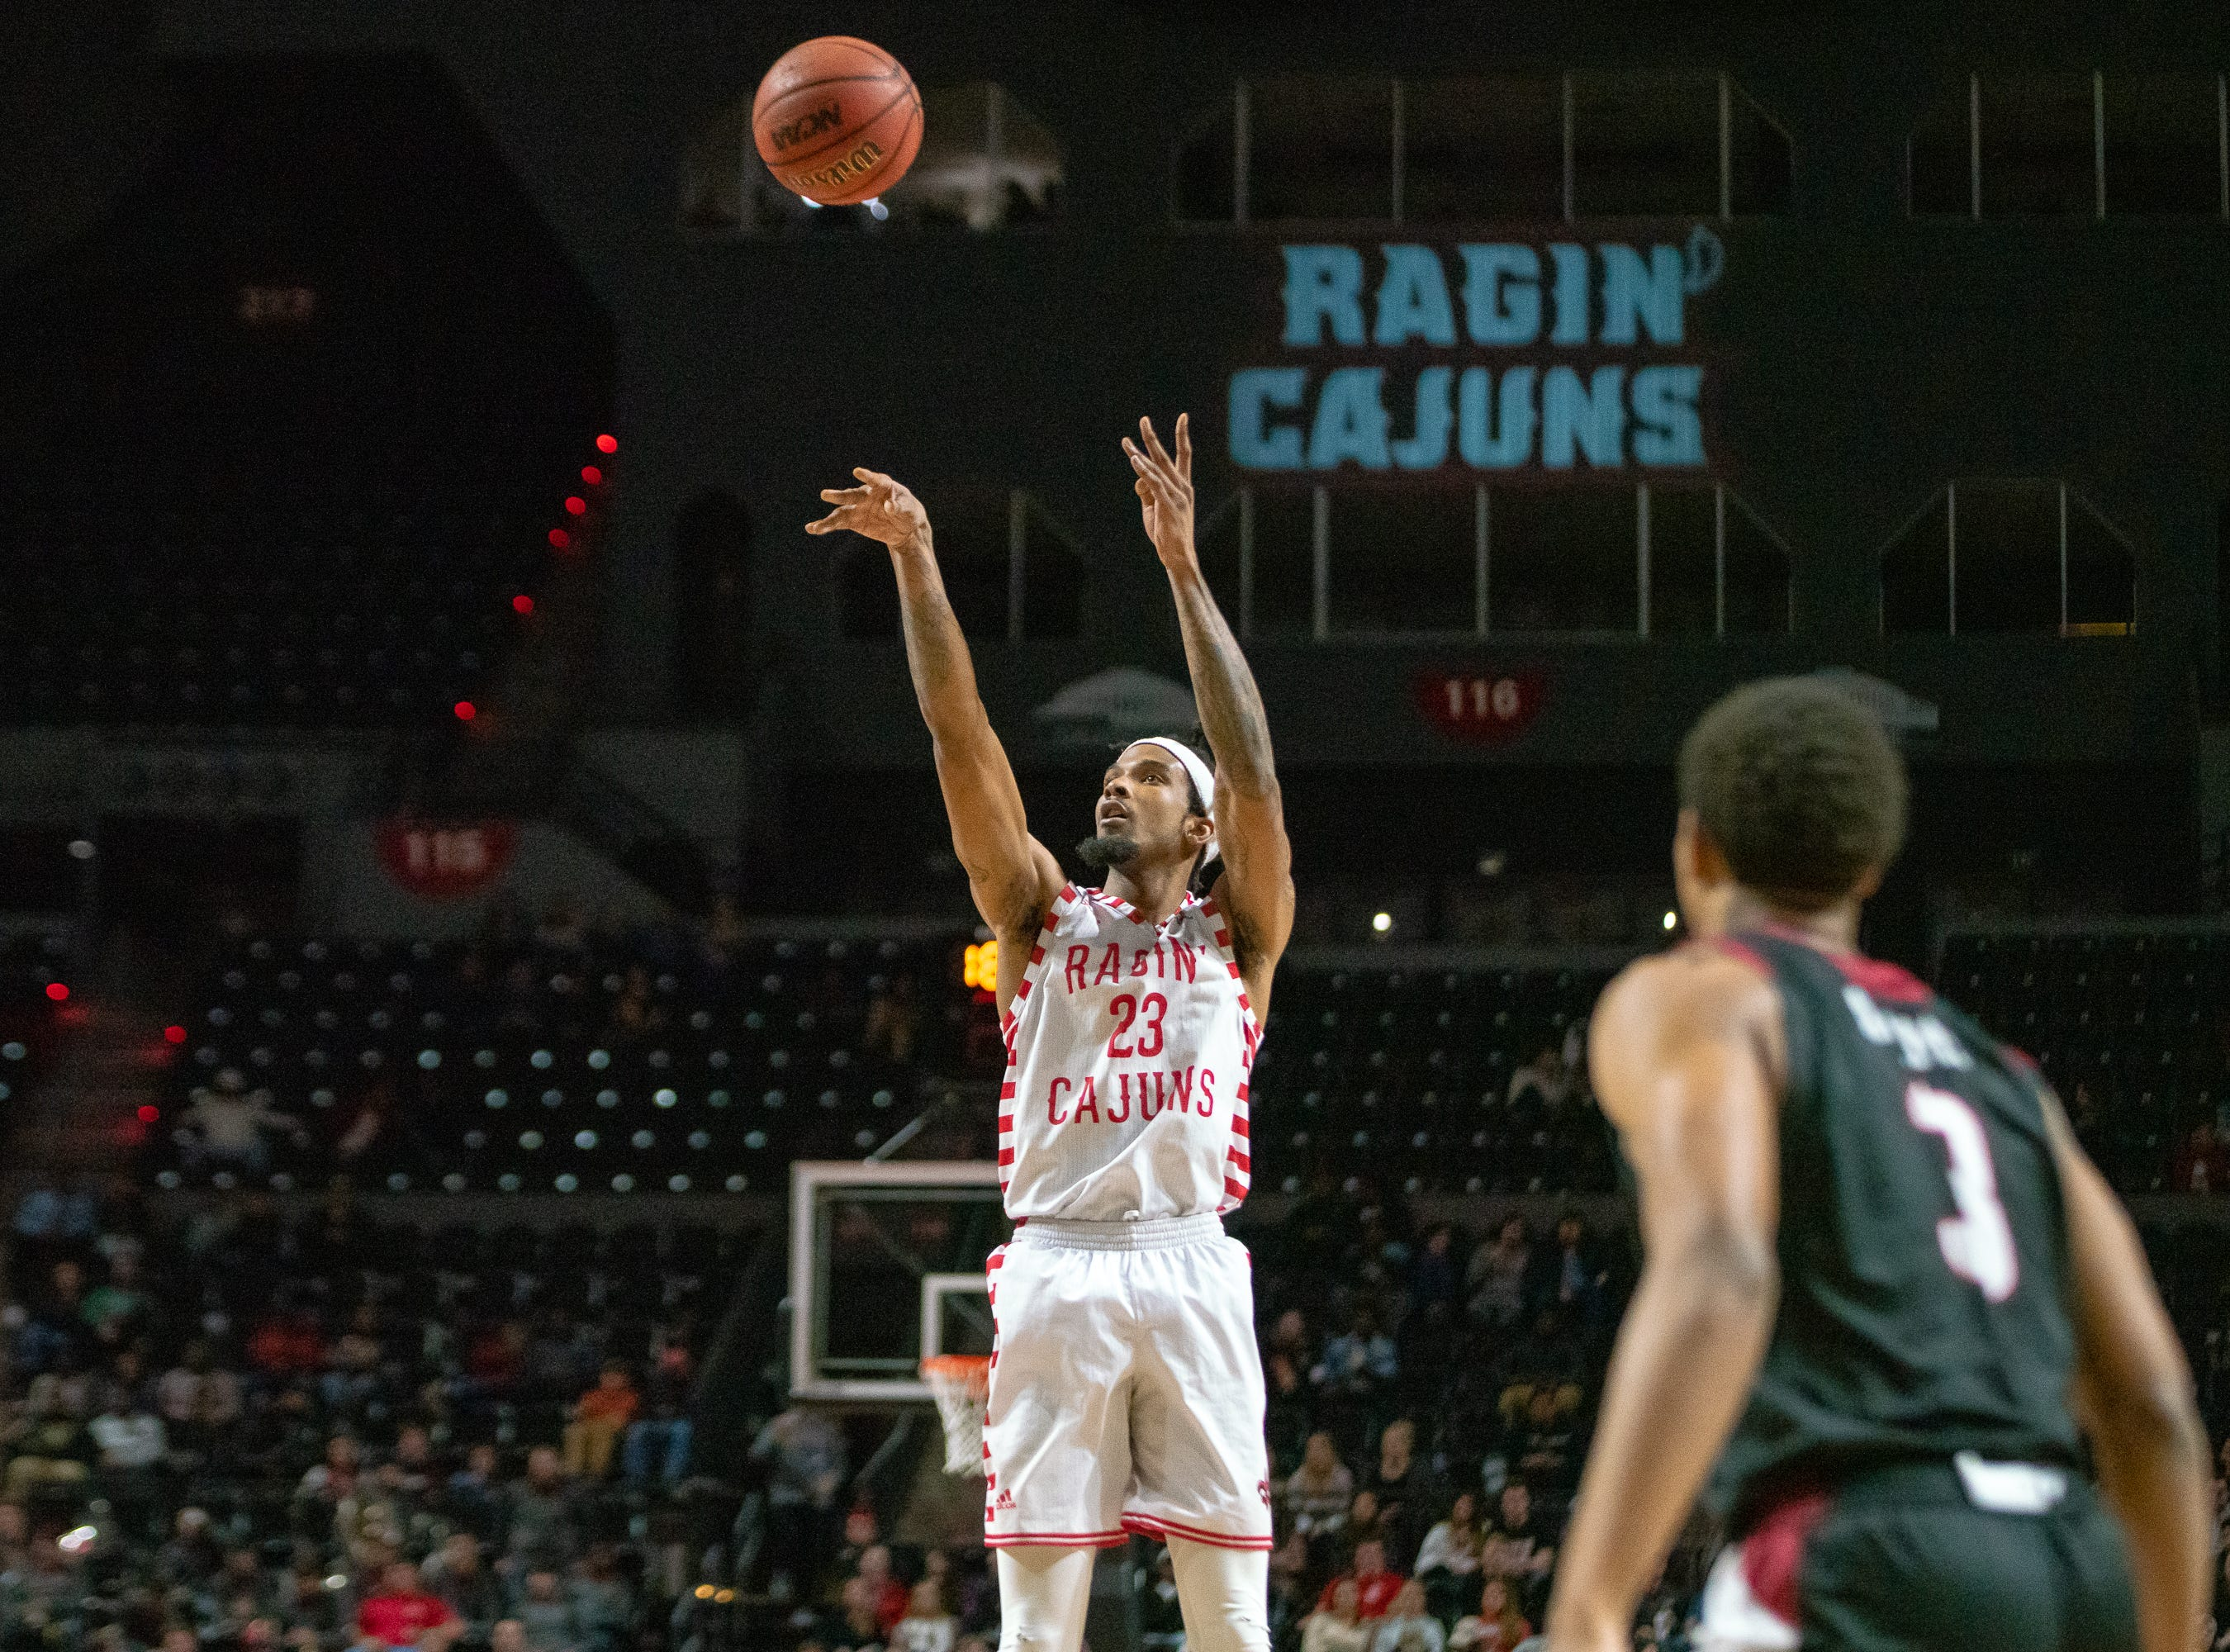 UL's JaKeenan Gant shoots to score a 3-pointer as the Ragin' Cajuns take on the Troy Trojans at the Cajundome on Jan. 26, 2019.